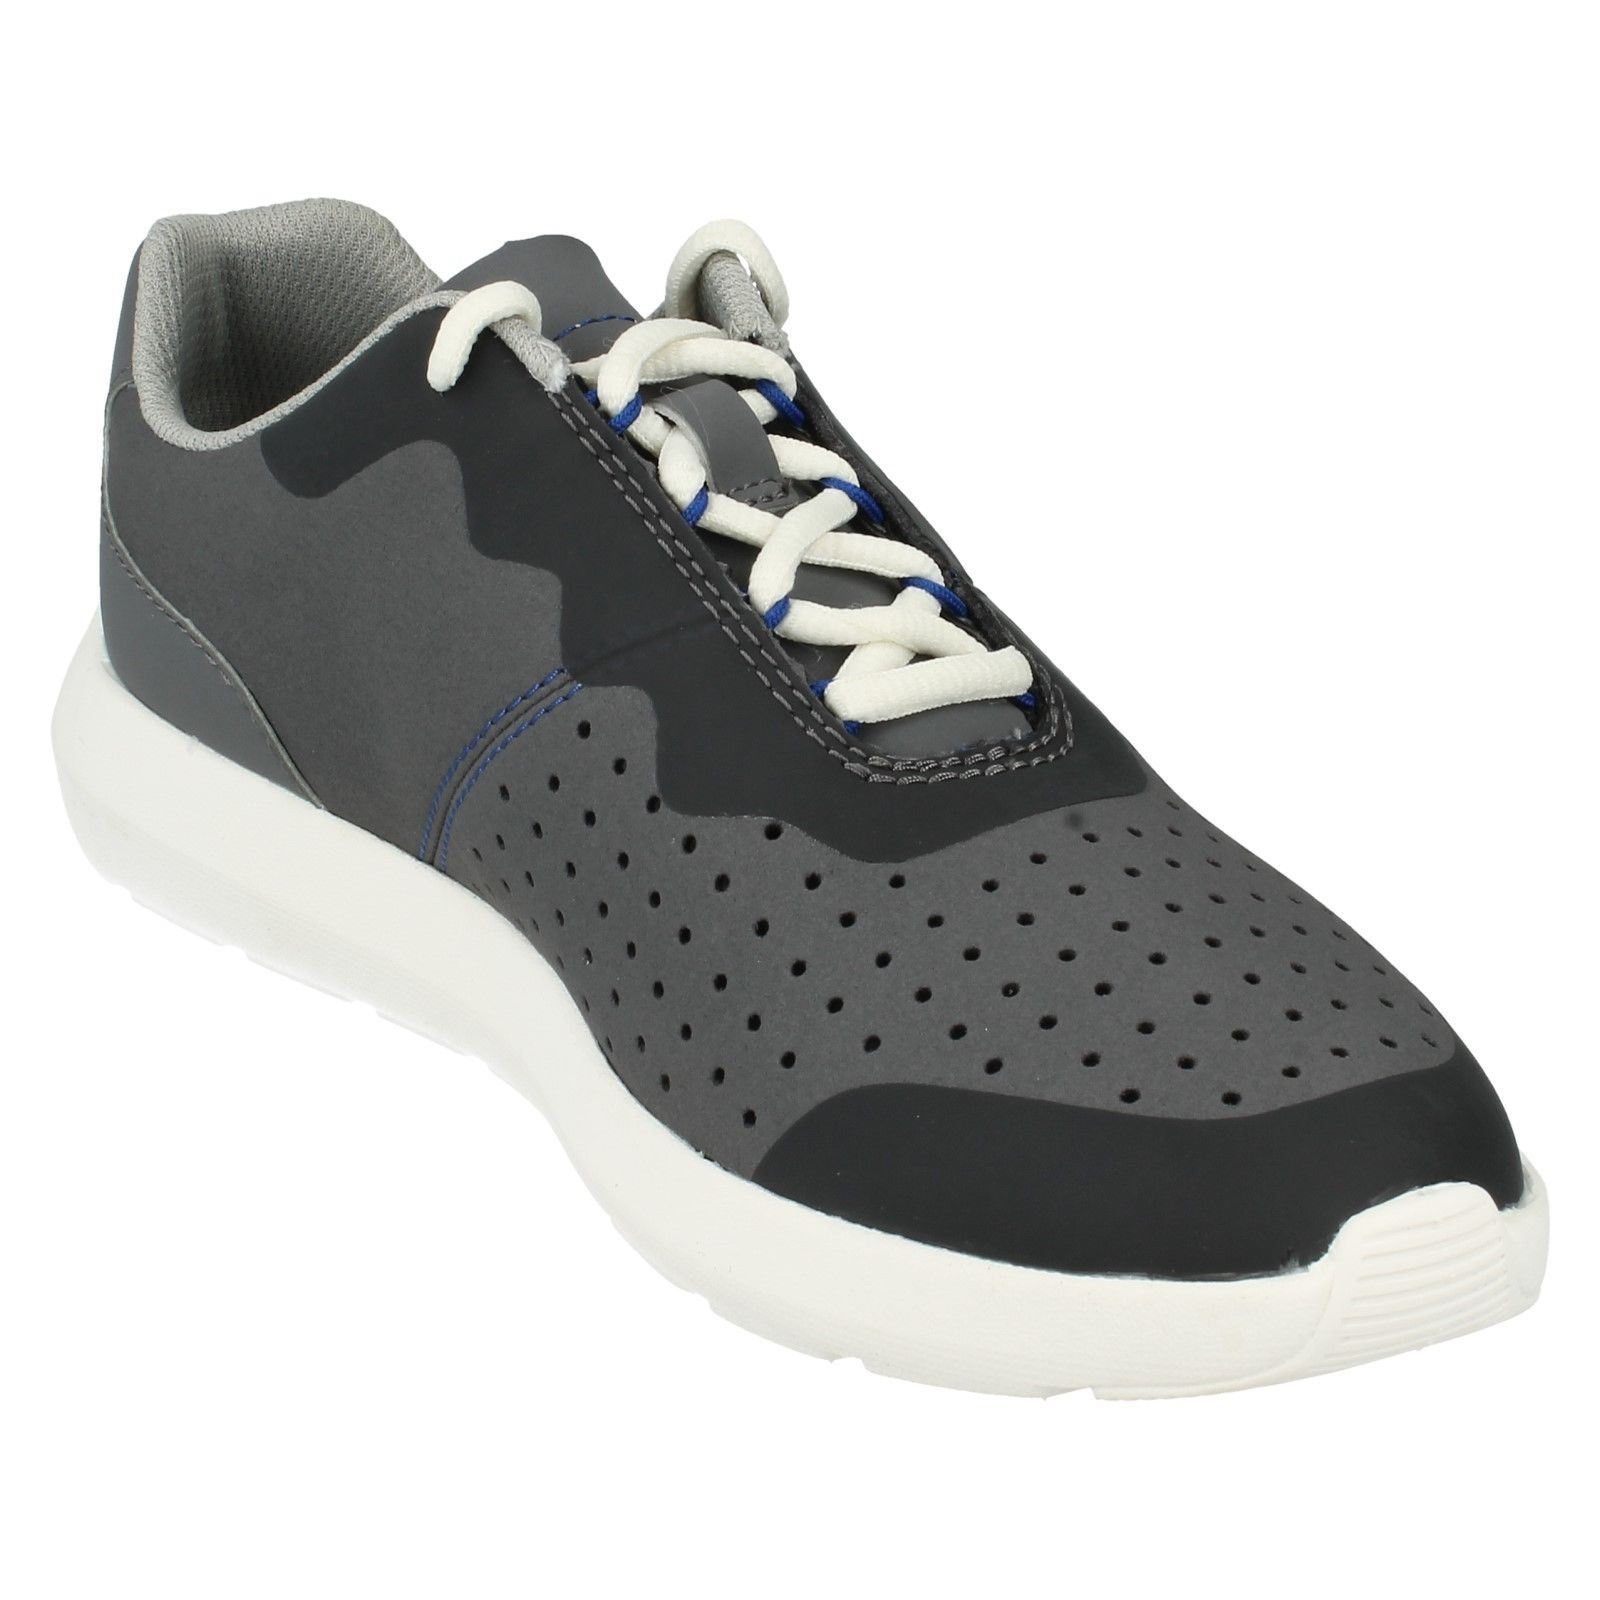 Men's Clarks Cloudsteppers Lace Up Lightweight Trainers Torset Vibe